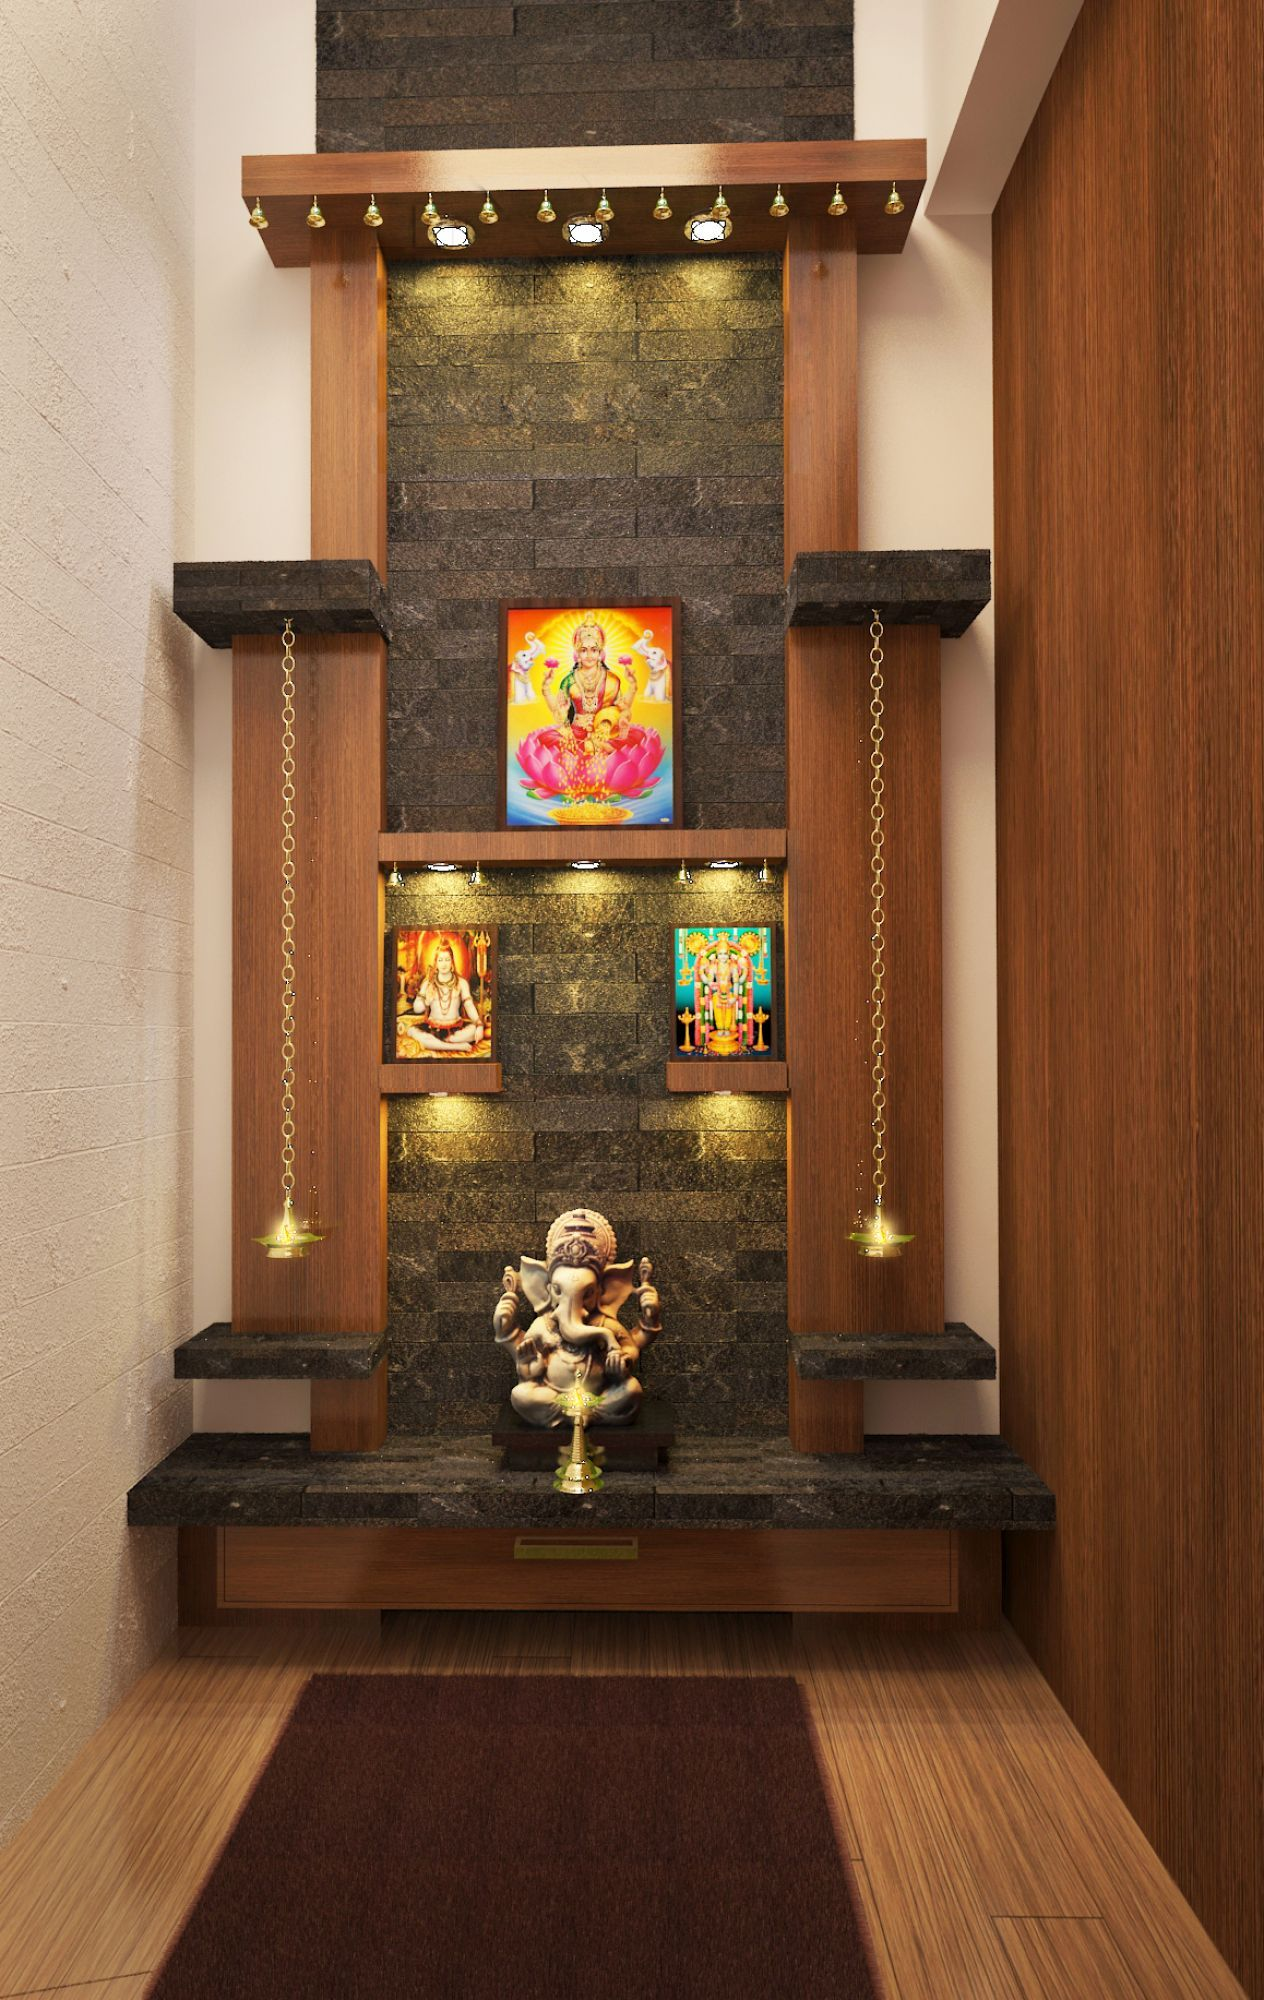 9 Traditional Pooja Room Door Designs In 2020: 05_large.jpg (1264×2000)